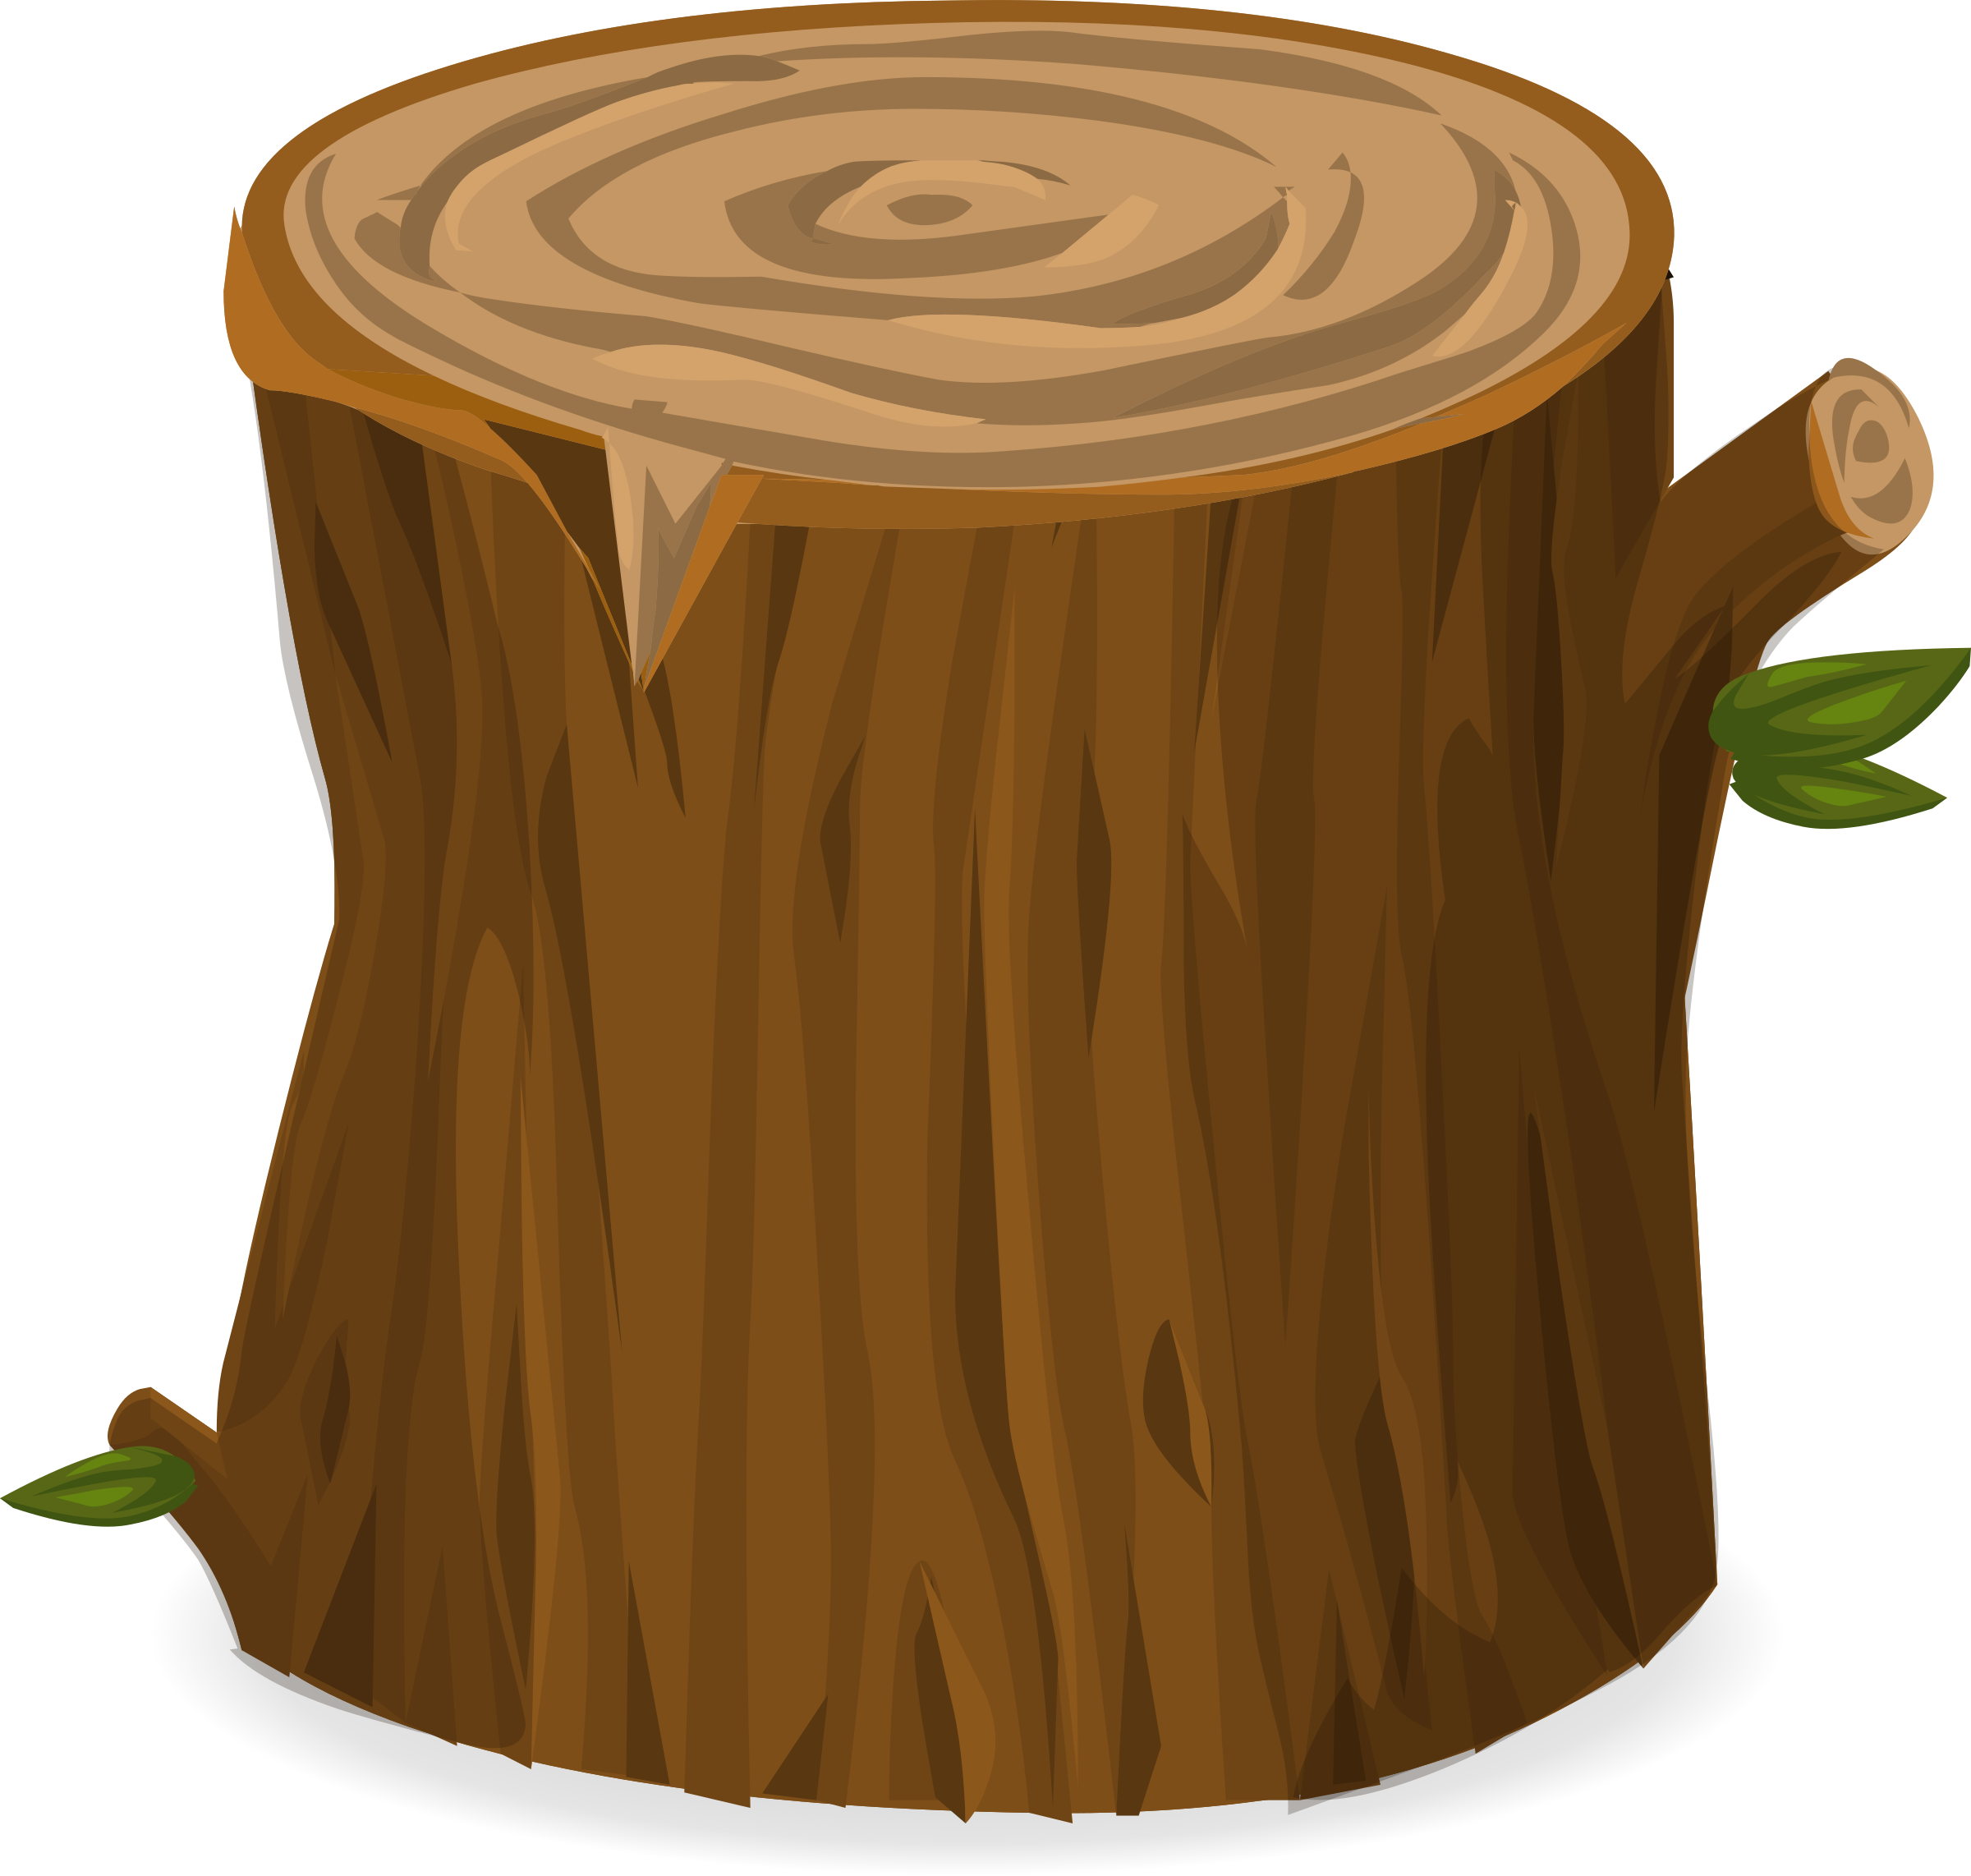 Brown tree trunk clipart picture freeuse Clipart - Tree stump from Glitch picture freeuse